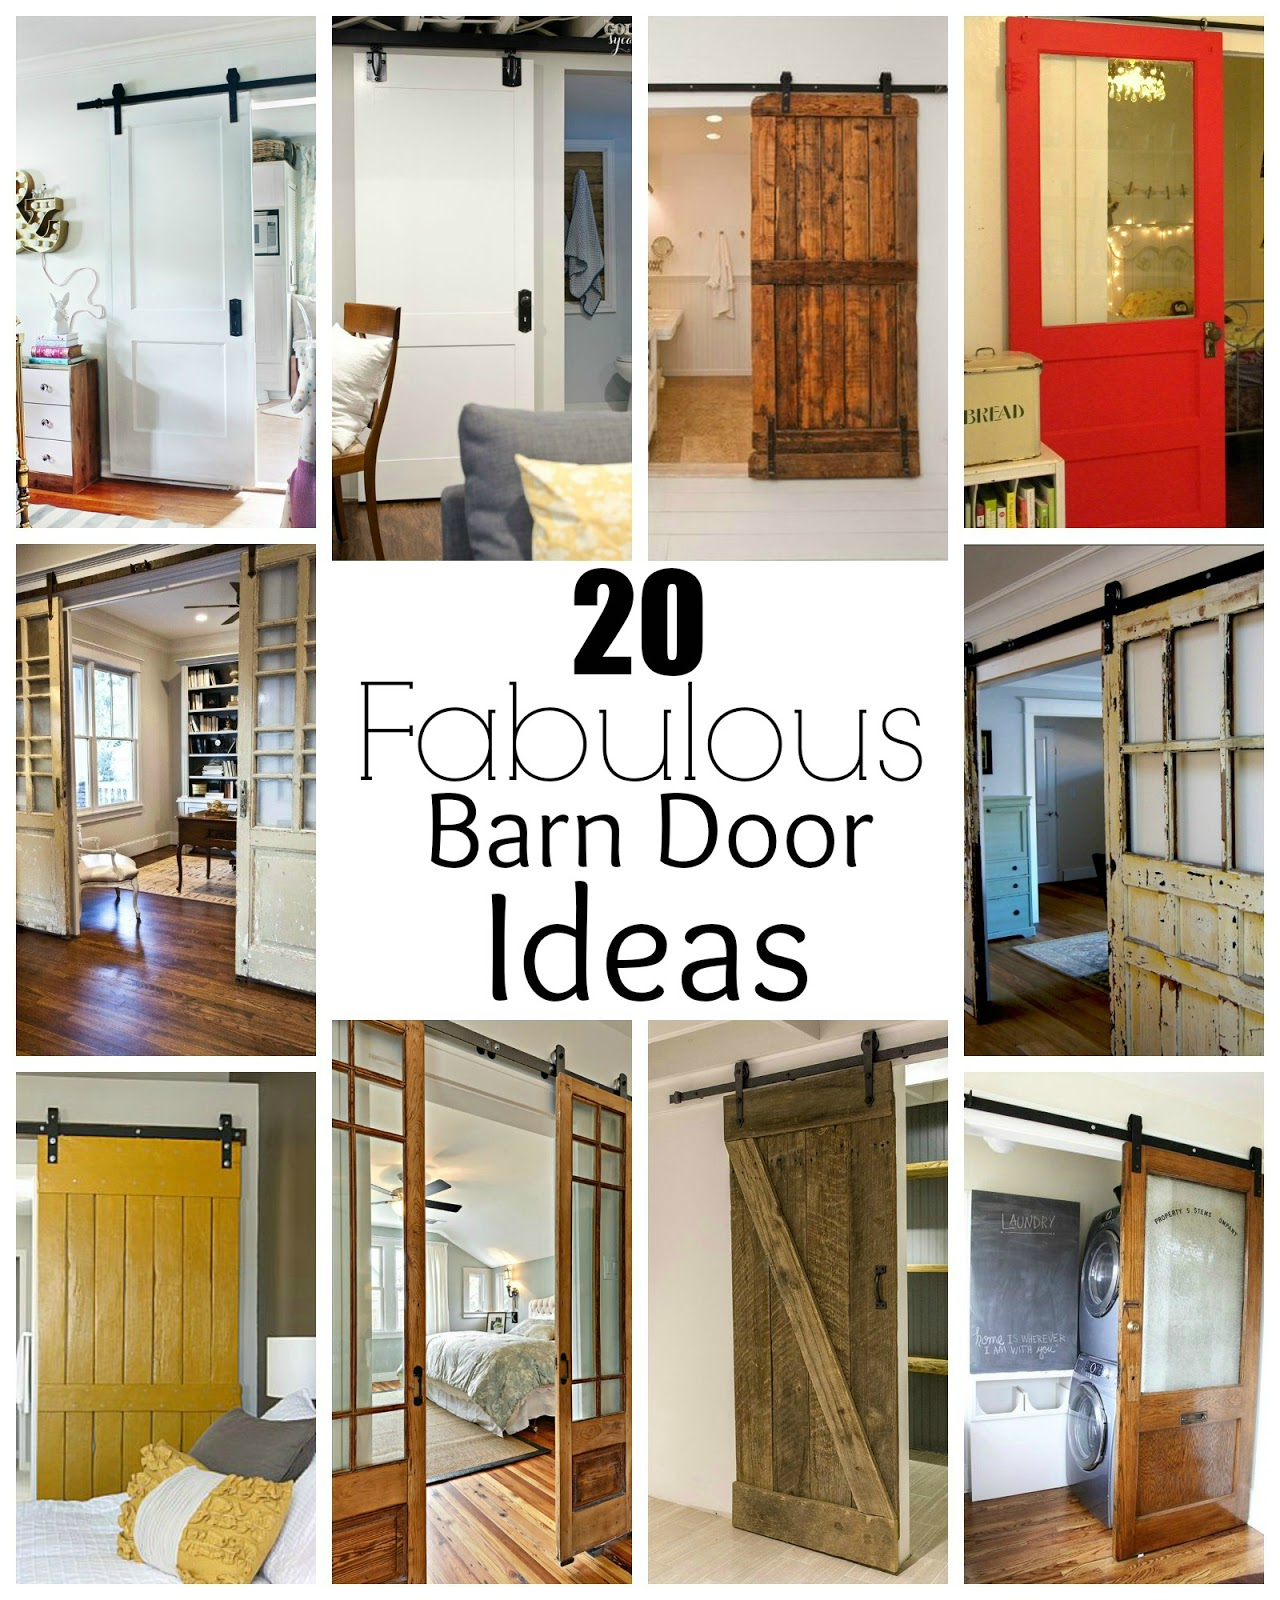 Sliding barn door in house - 20 Fabulous Barn Doors Perfect For Any Style And Space